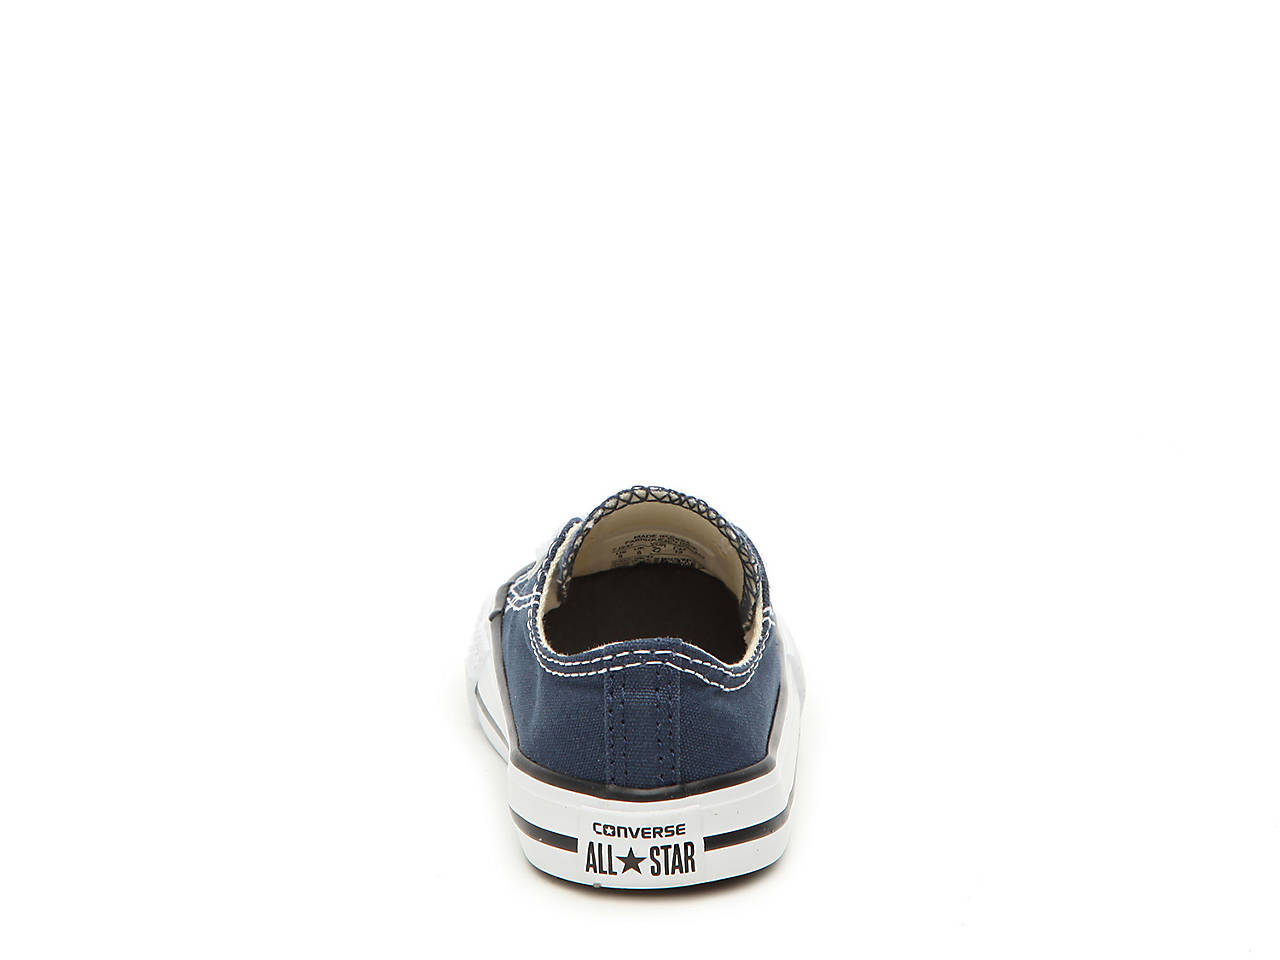 7eb2fd06f2 Converse Chuck Taylor All Star Infant   Toddler Sneaker Kids Shoes